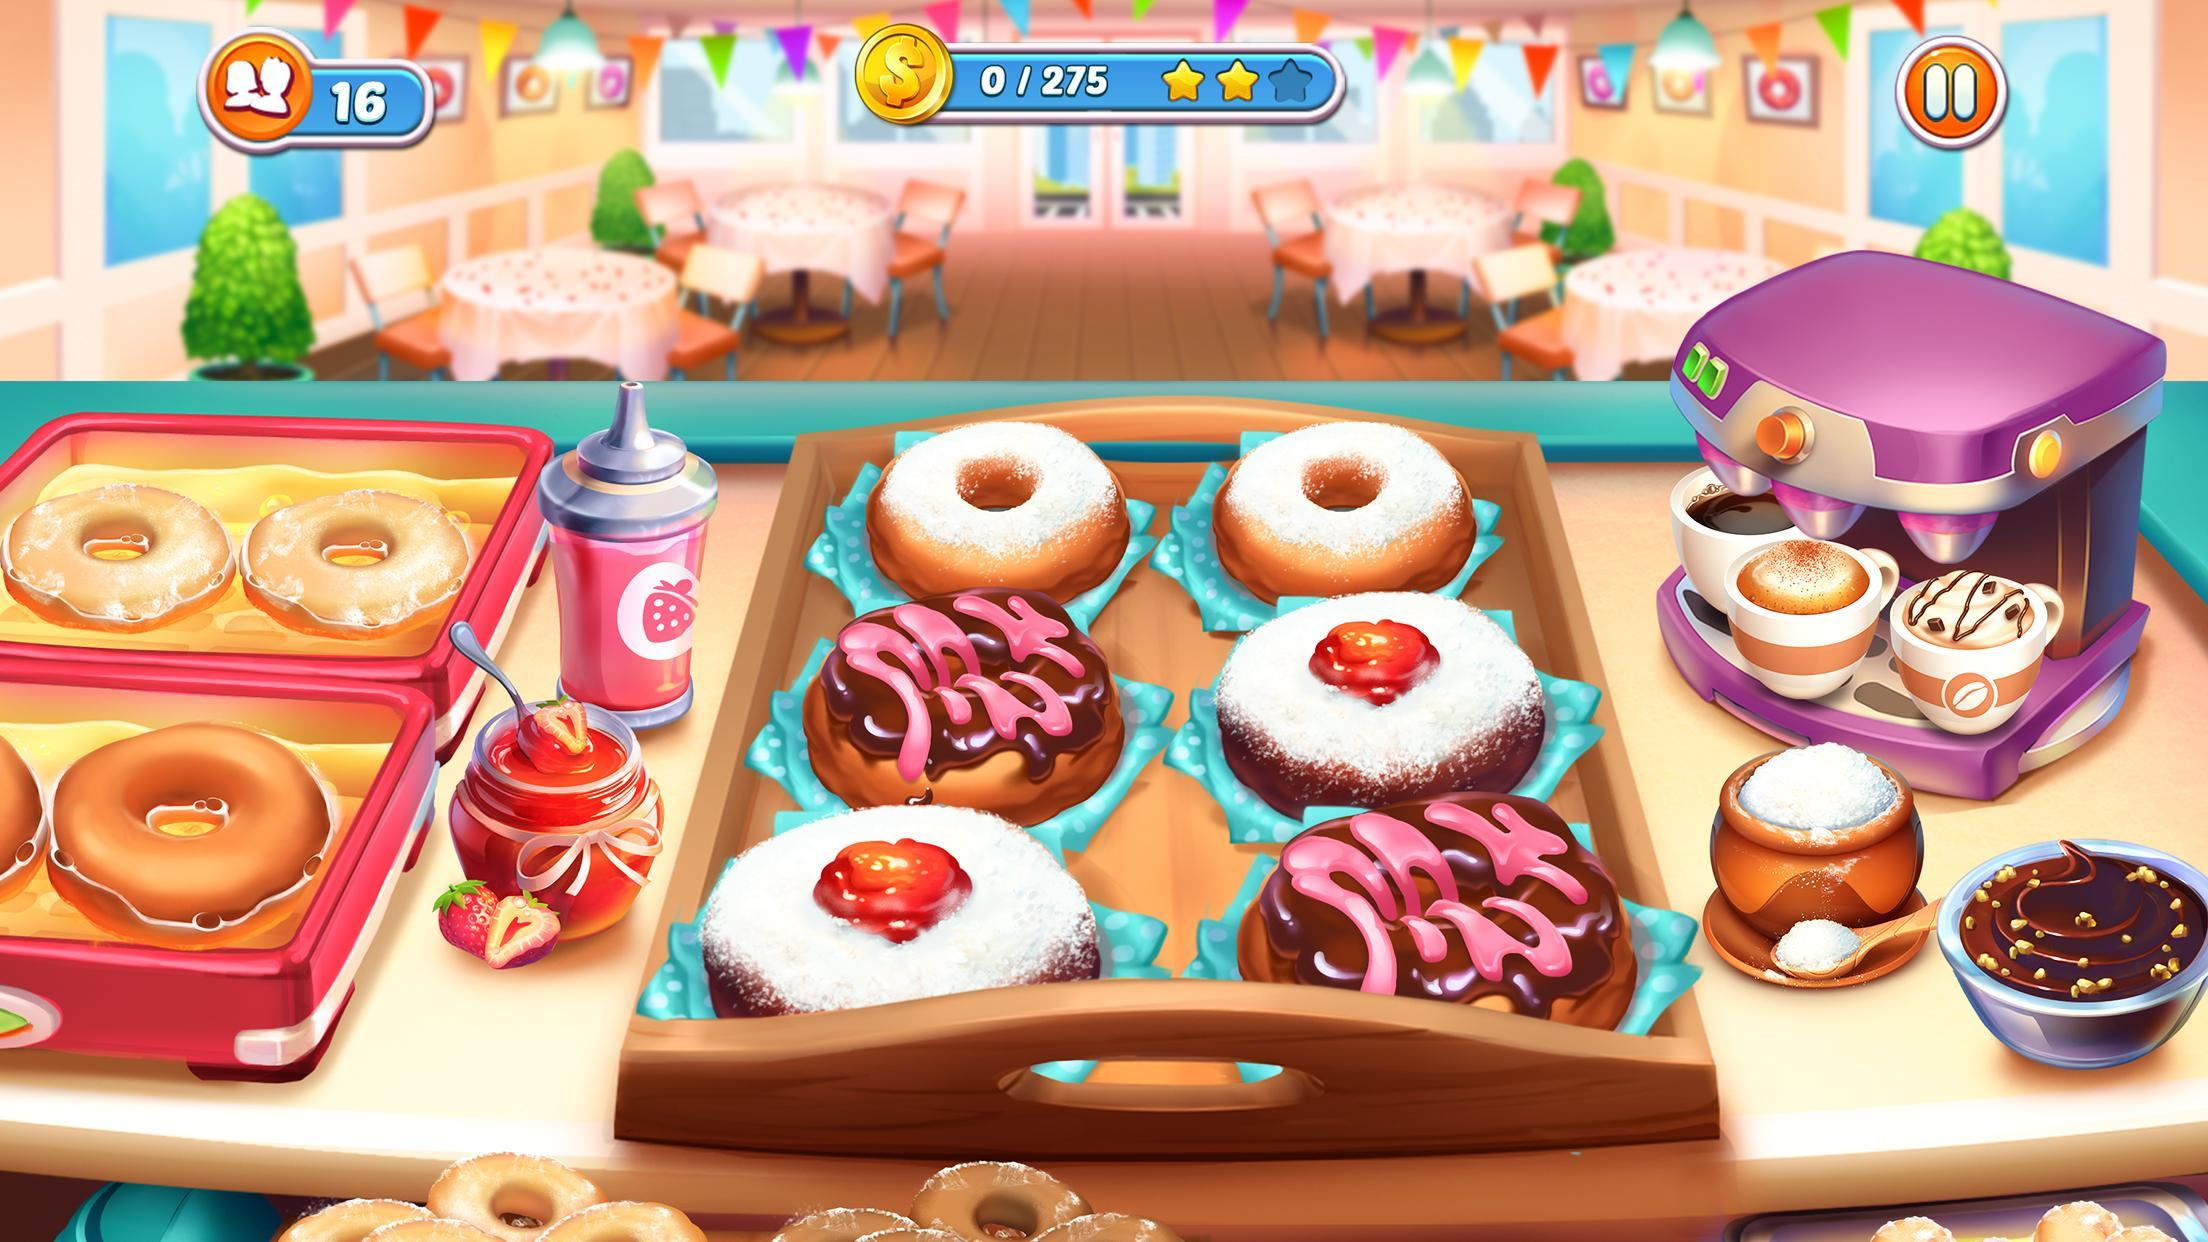 Cook It! Madness of Free Frenzy Cooking Games City 1.3.3 Screenshot 3